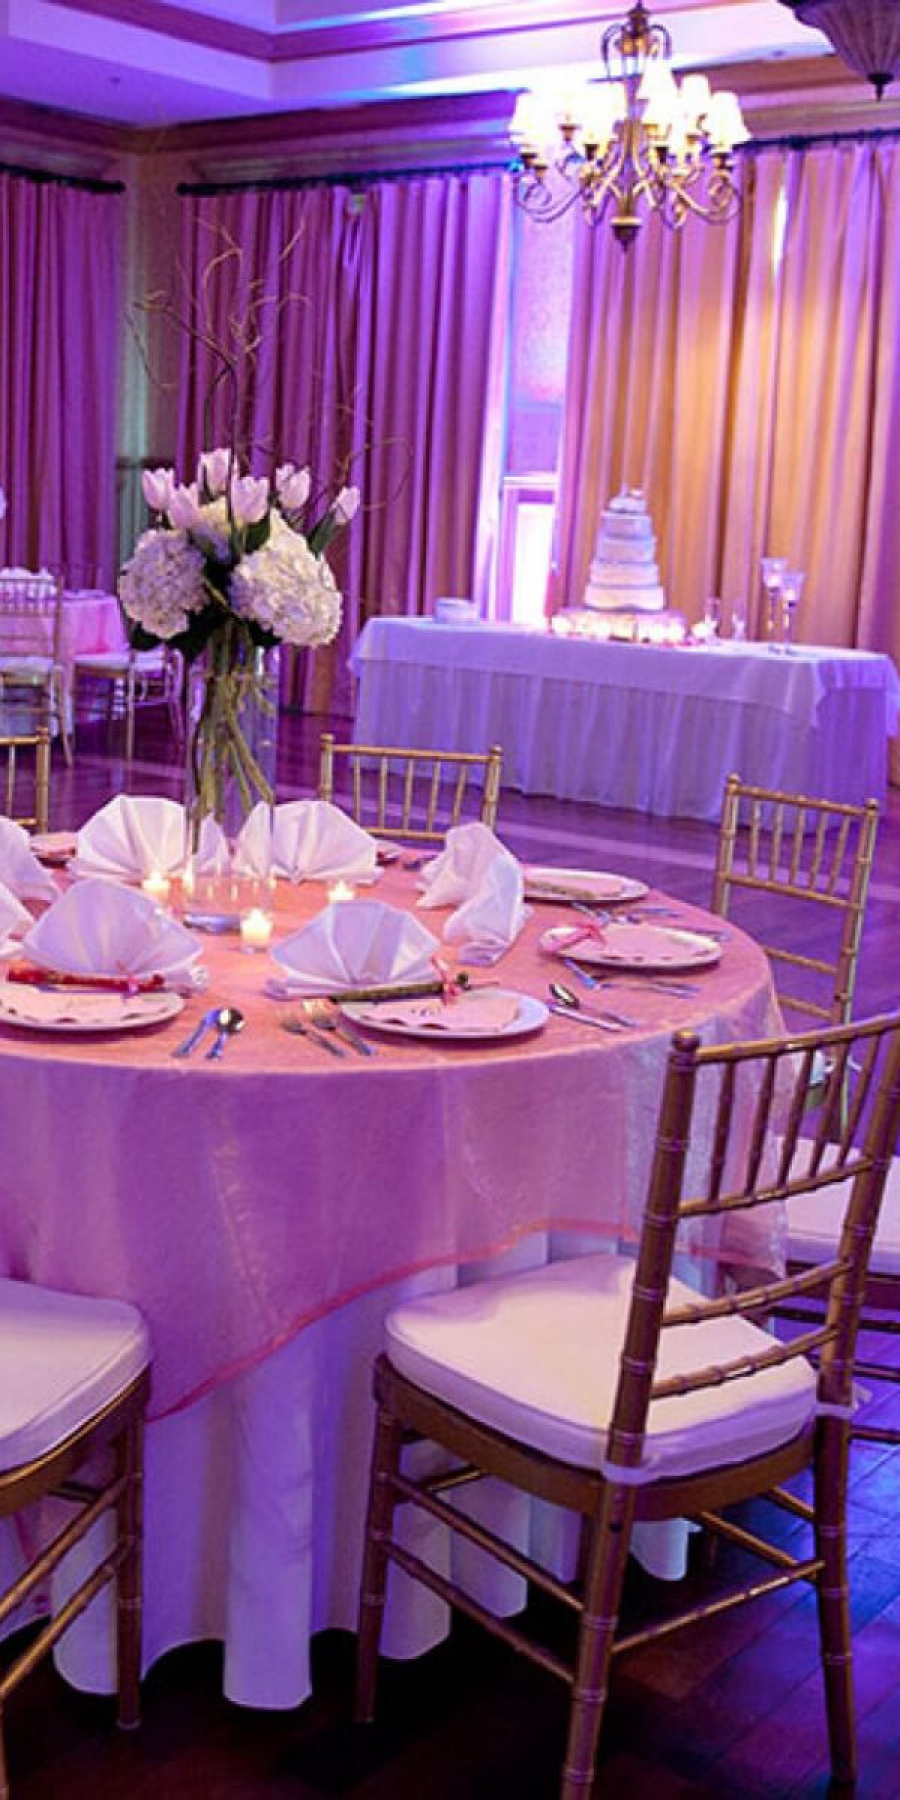 Event Type placeholder - image of a ballroom decorated with a wedding cake, round tables with white linens, chairs & pink uplighting.